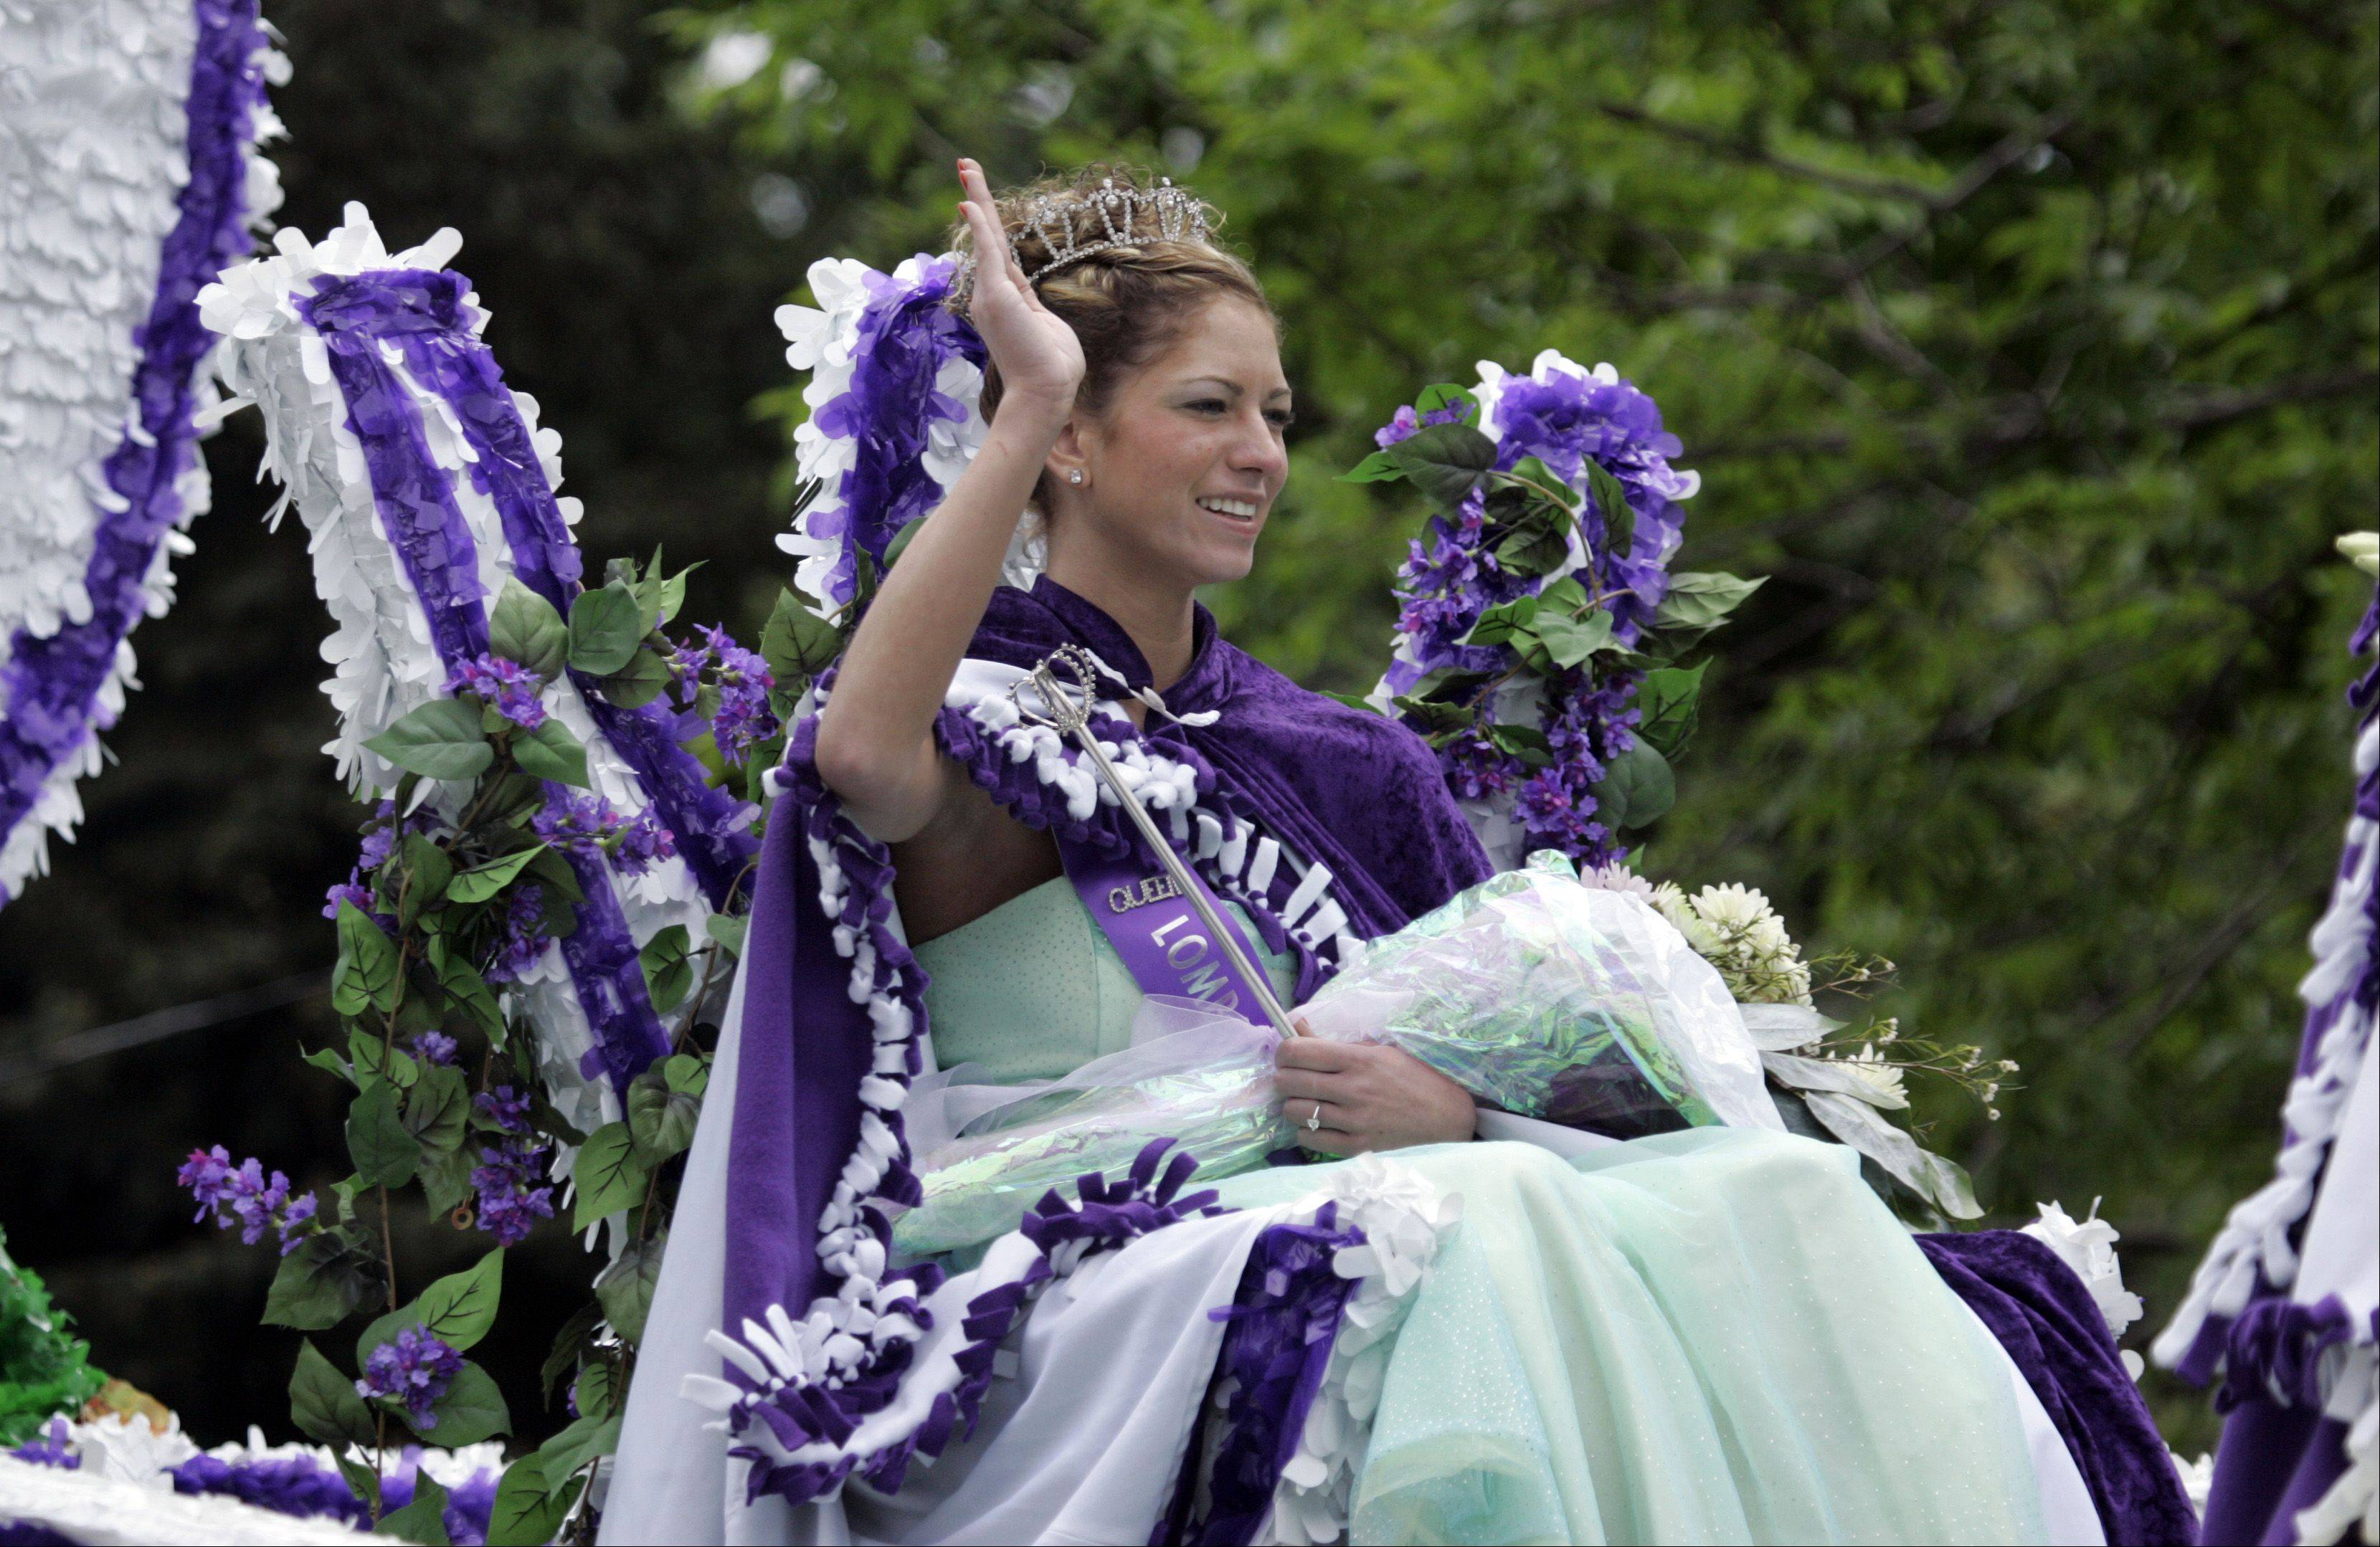 The Lilac Queen always is featured during the Lilac Parade. This year's parade steps off at 1:30 p.m. Sunday, May 19, from Main Street and Wilson Avenue in Lombard.